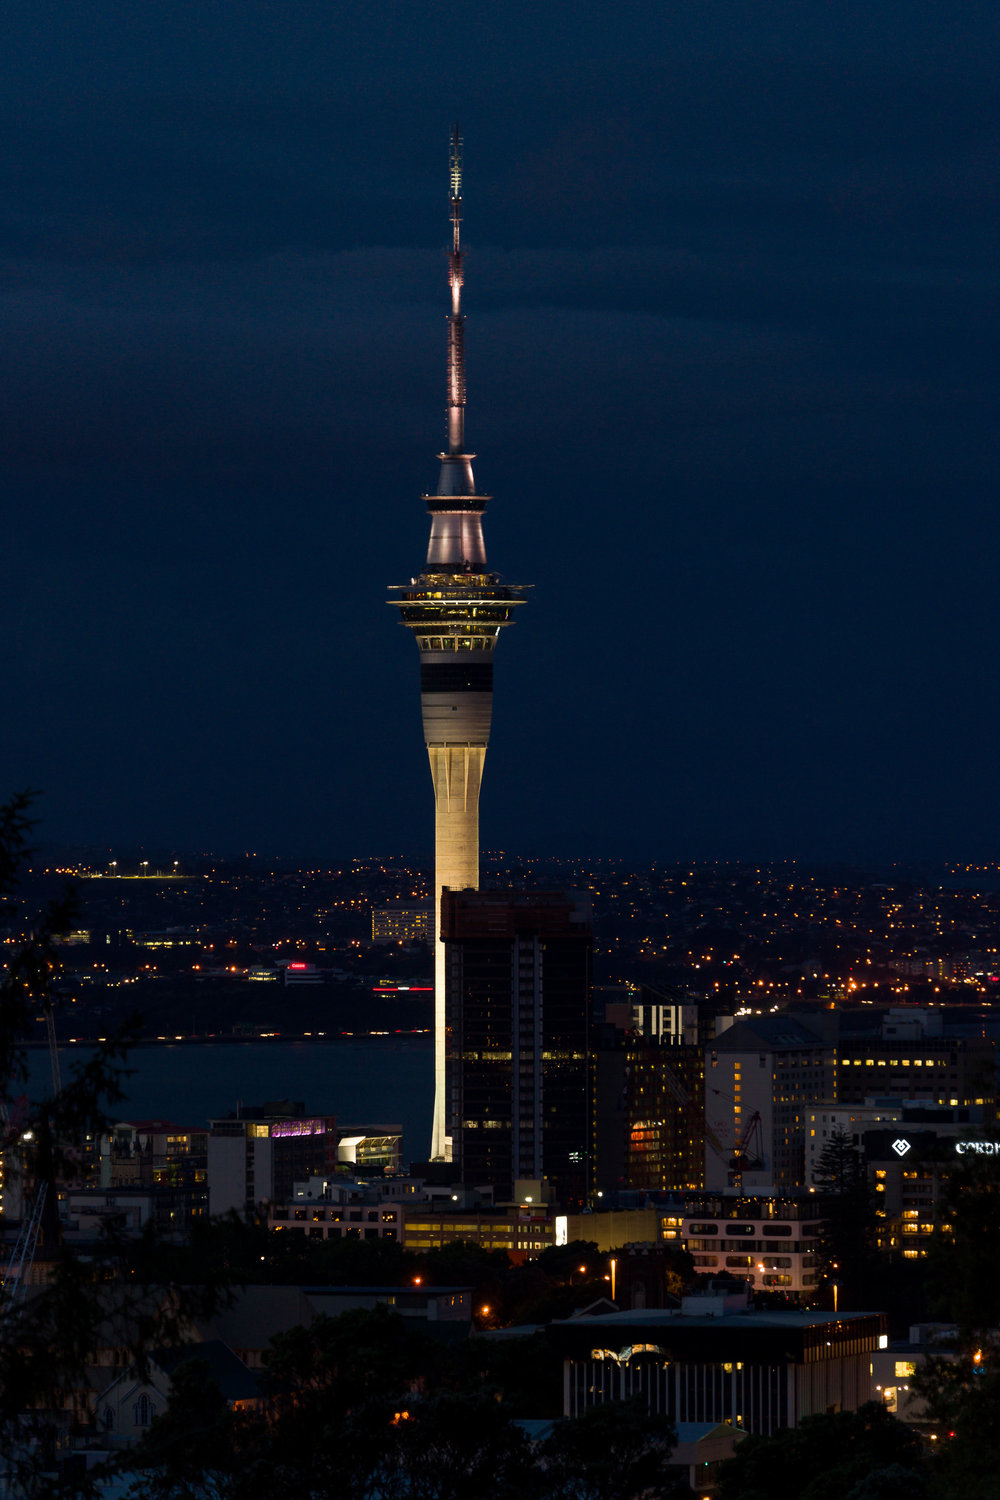 Auckland Sky Tower from Mount Eden